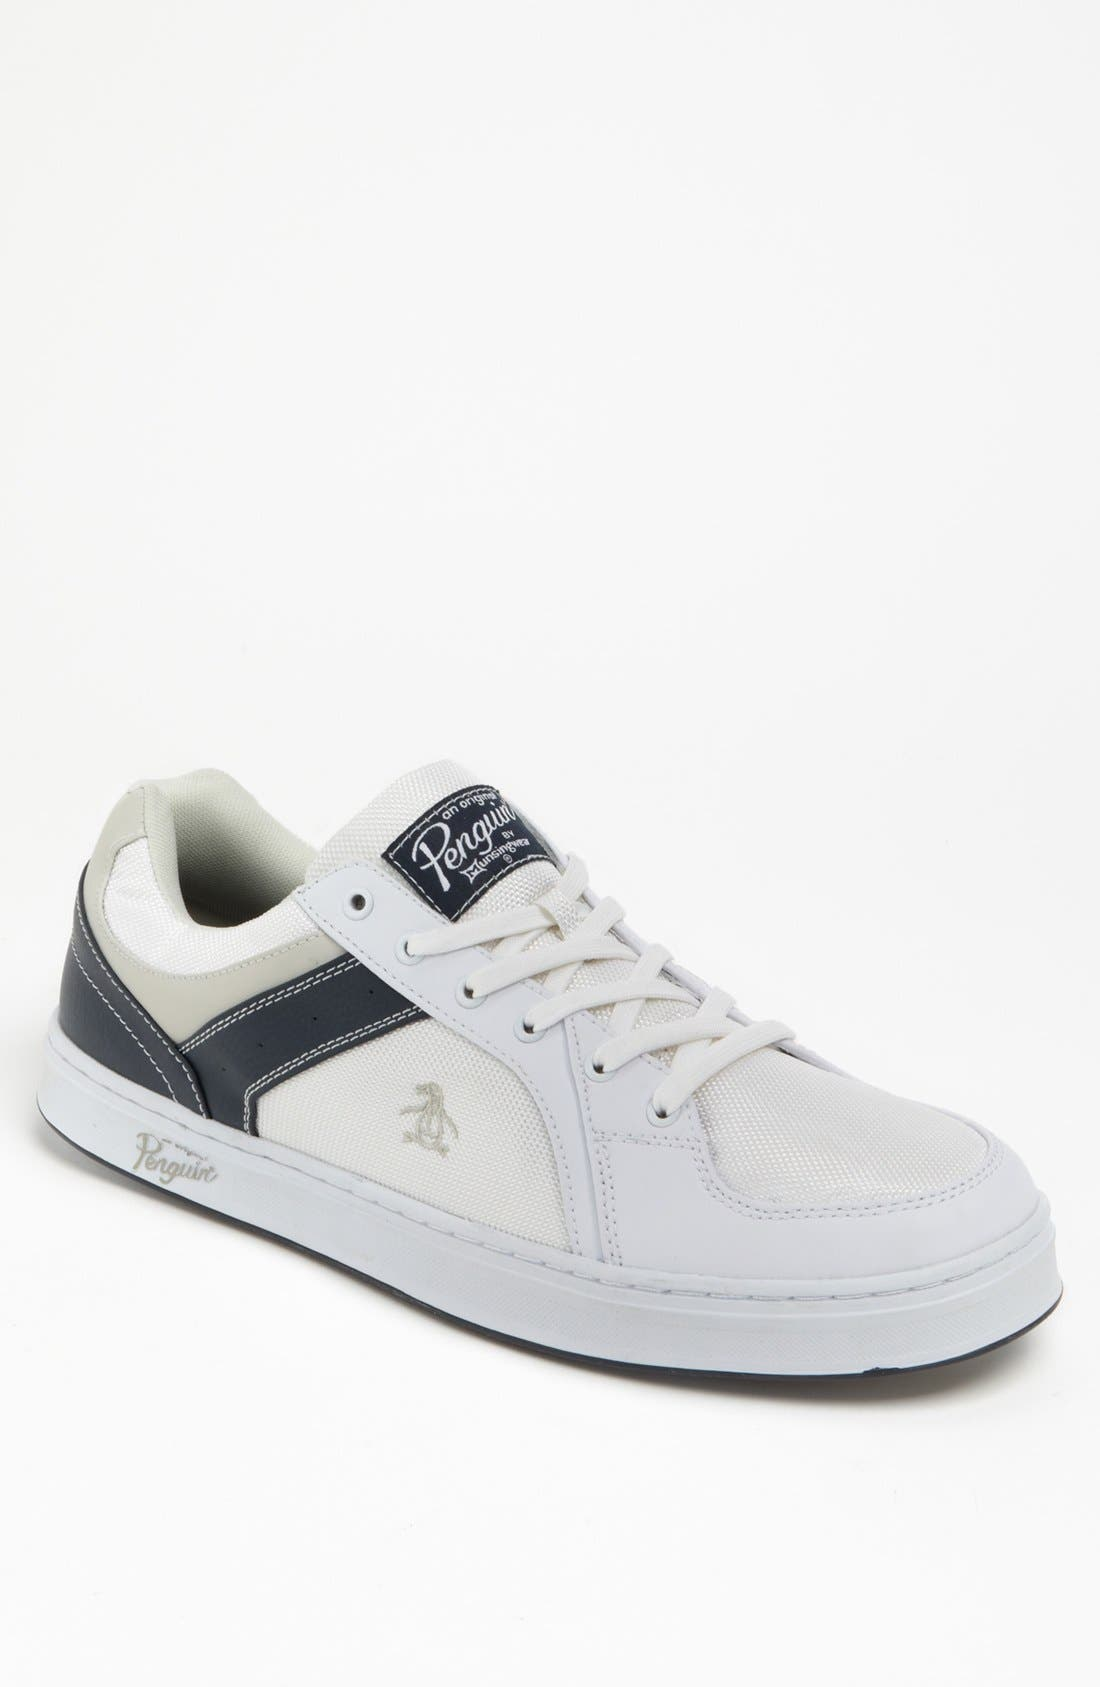 Alternate Image 1 Selected - Original Penguin 'Front' Sneaker